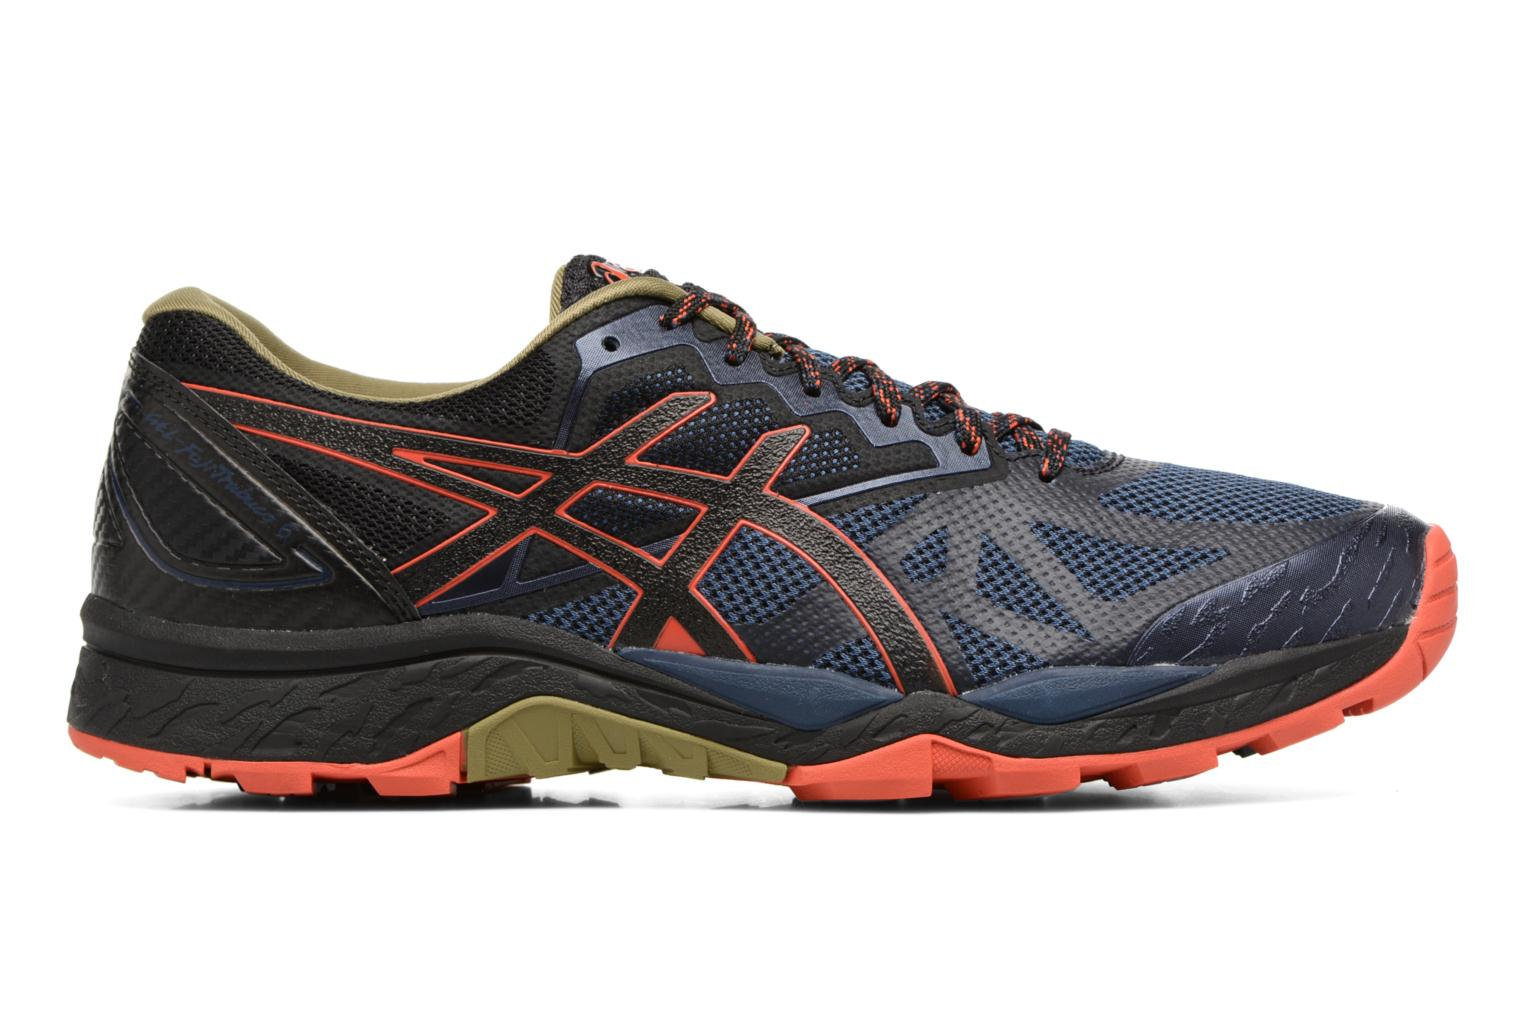 Gel-Fujitrabuco 6 Insignia Blue/Black/Red Clay